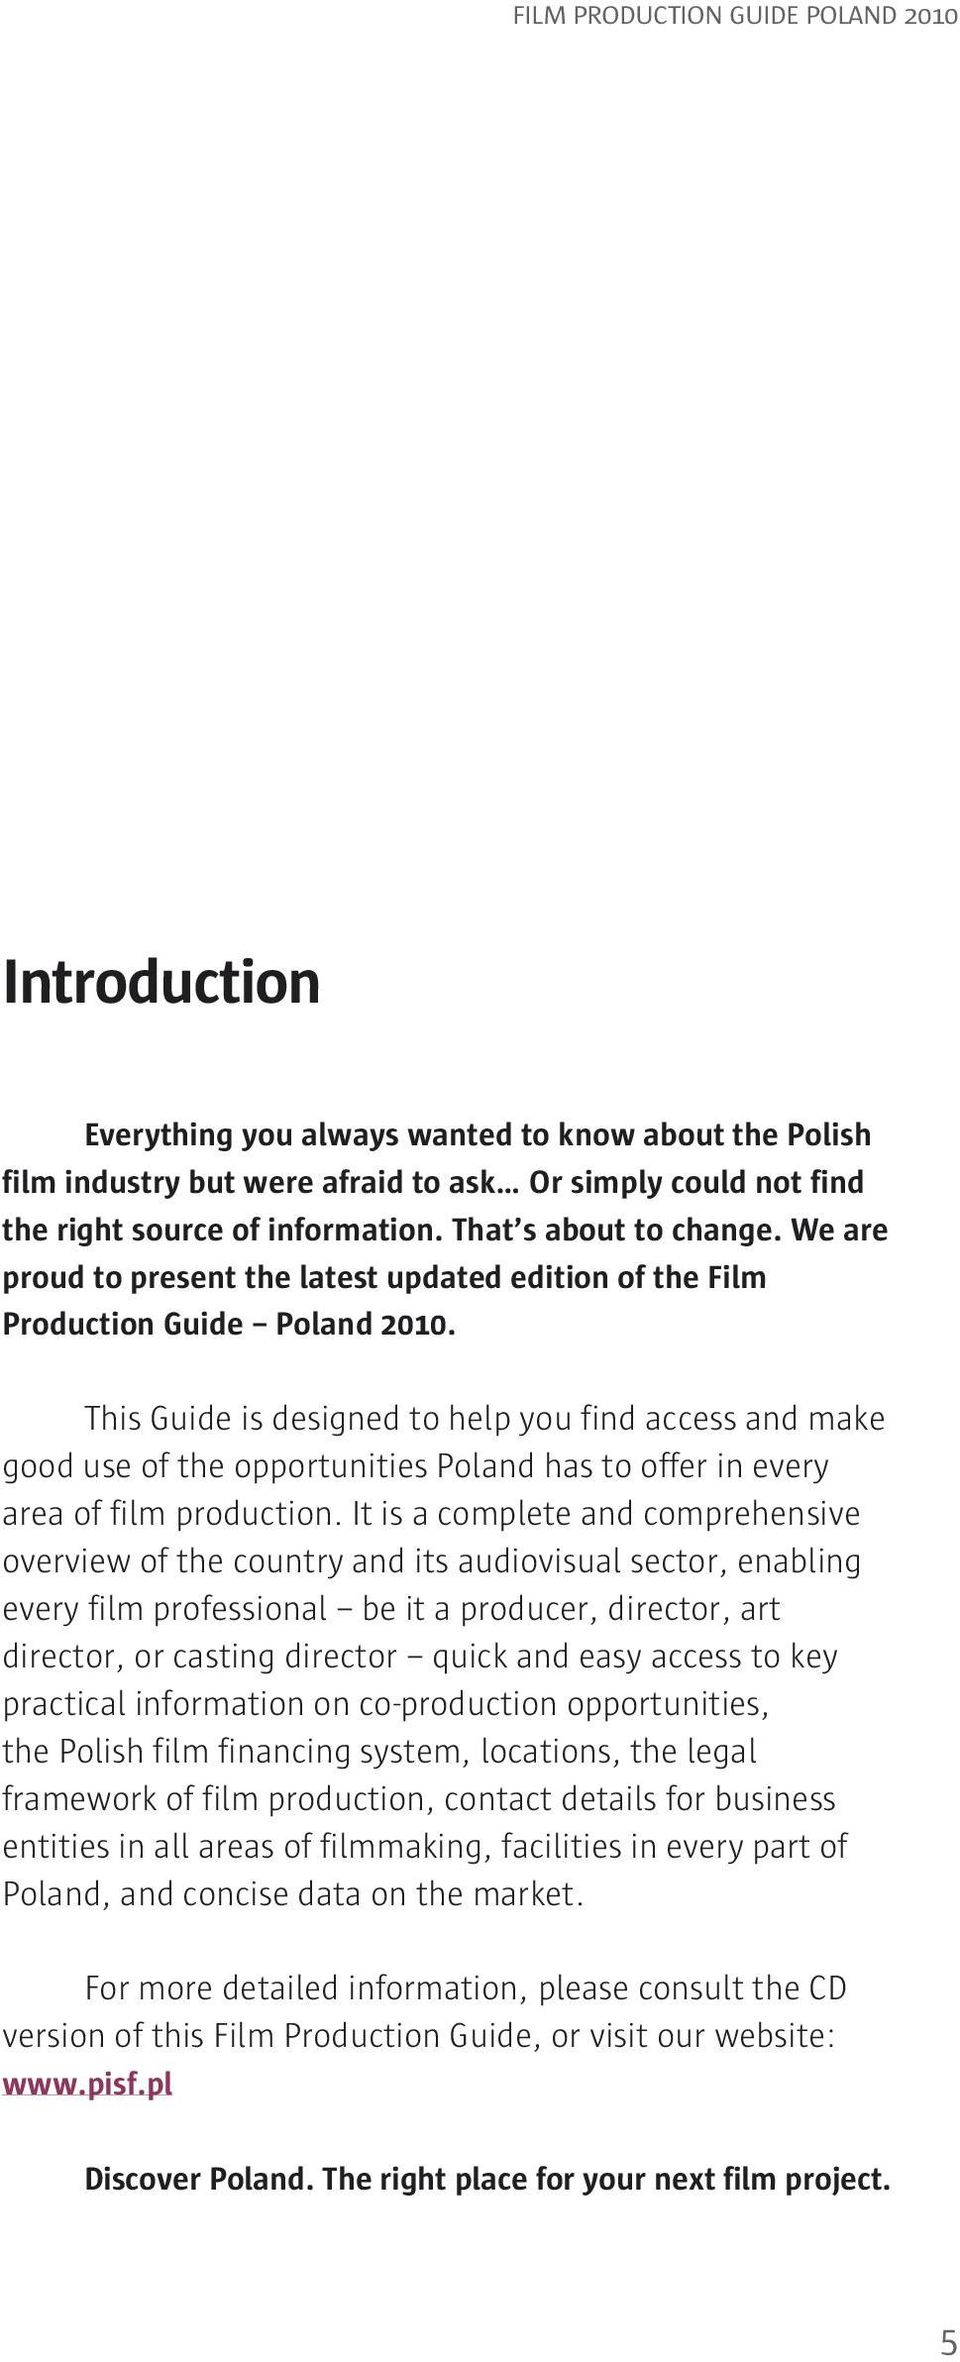 This Guide is designed to help you find access and make good use of the opportunities Poland has to offer in every area of film production.